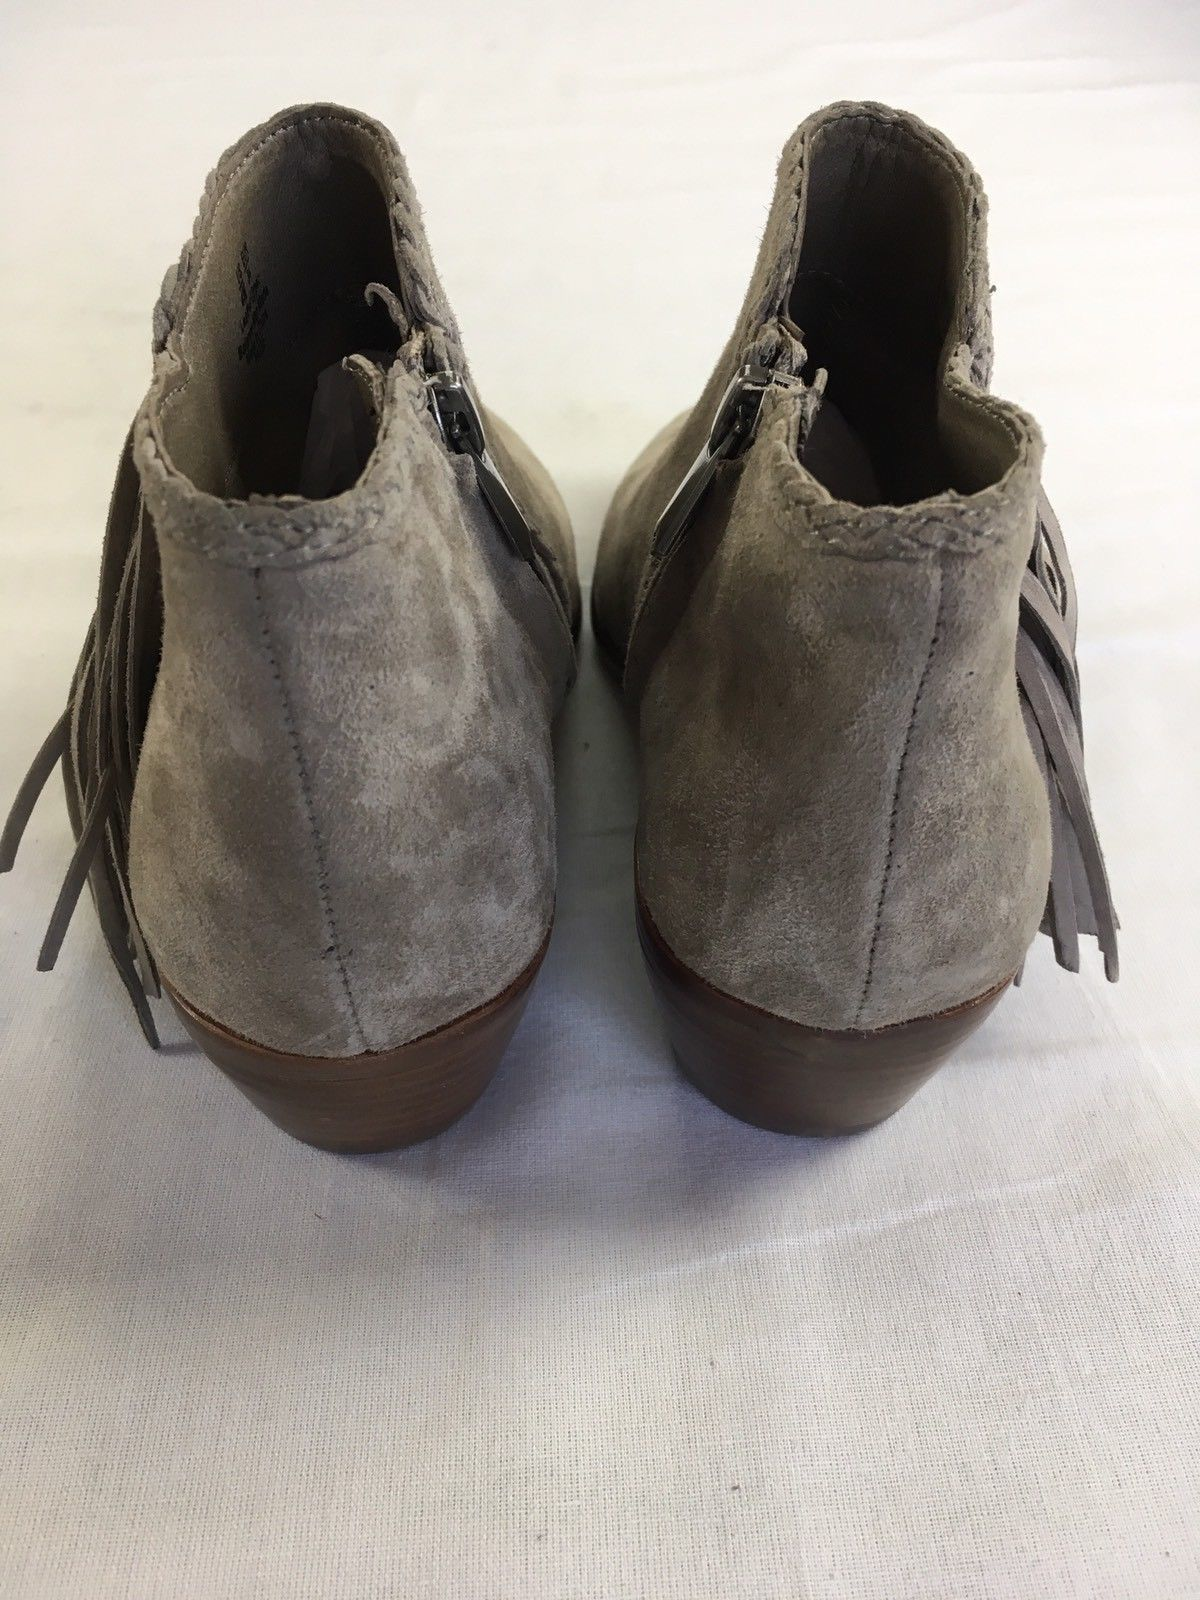 6db9c3f74946 SAM EDELMAN Ankle Booties Paige Fringe Boots Putty Grey Suede Leather 4 New